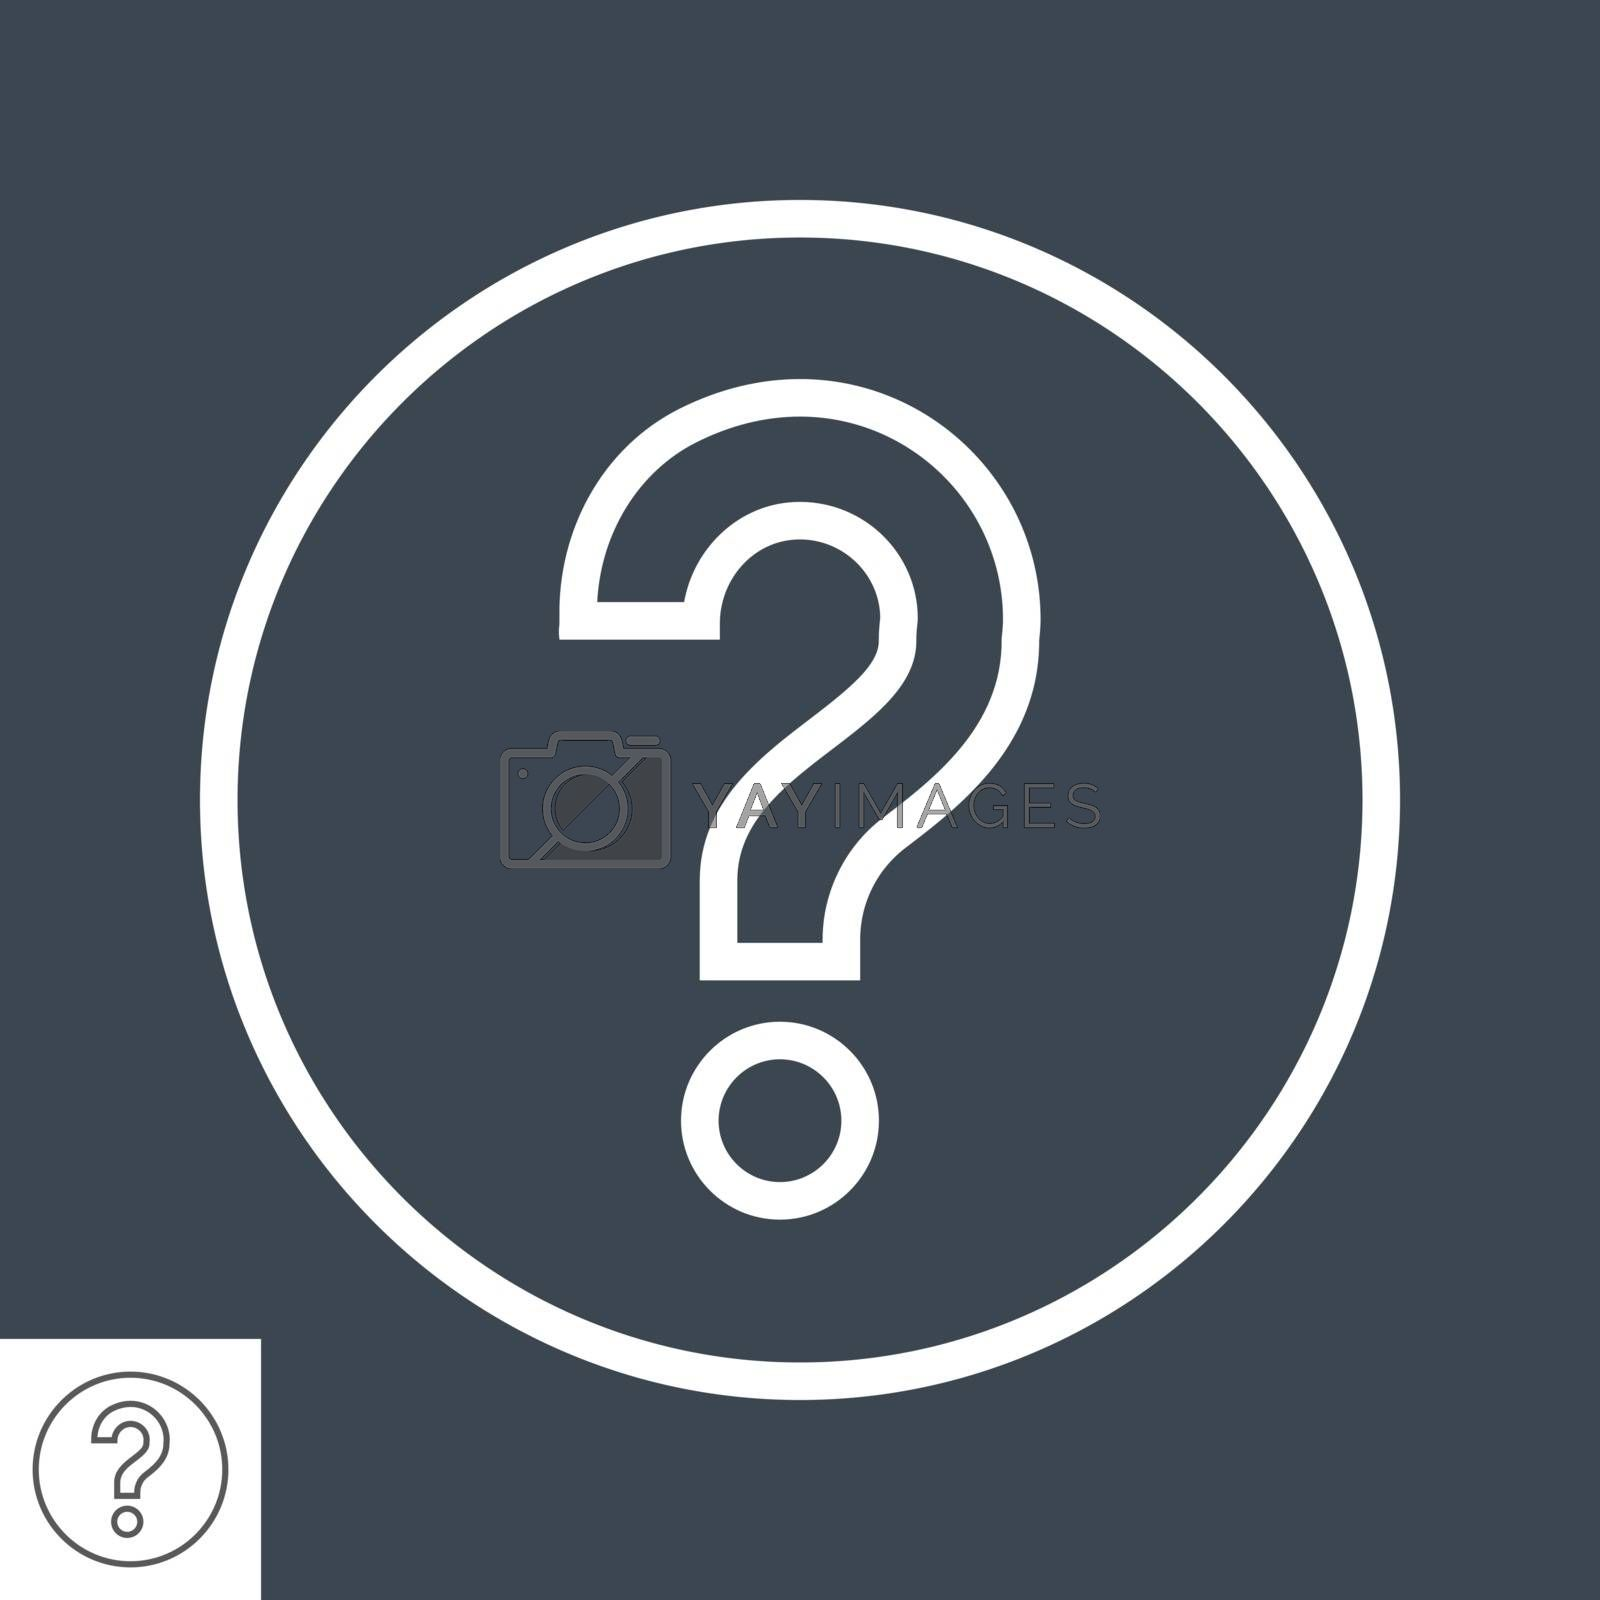 Question Mark Thin Line Vector Icon. Flat icon isolated on the black background. Editable EPS file. Vector illustration.